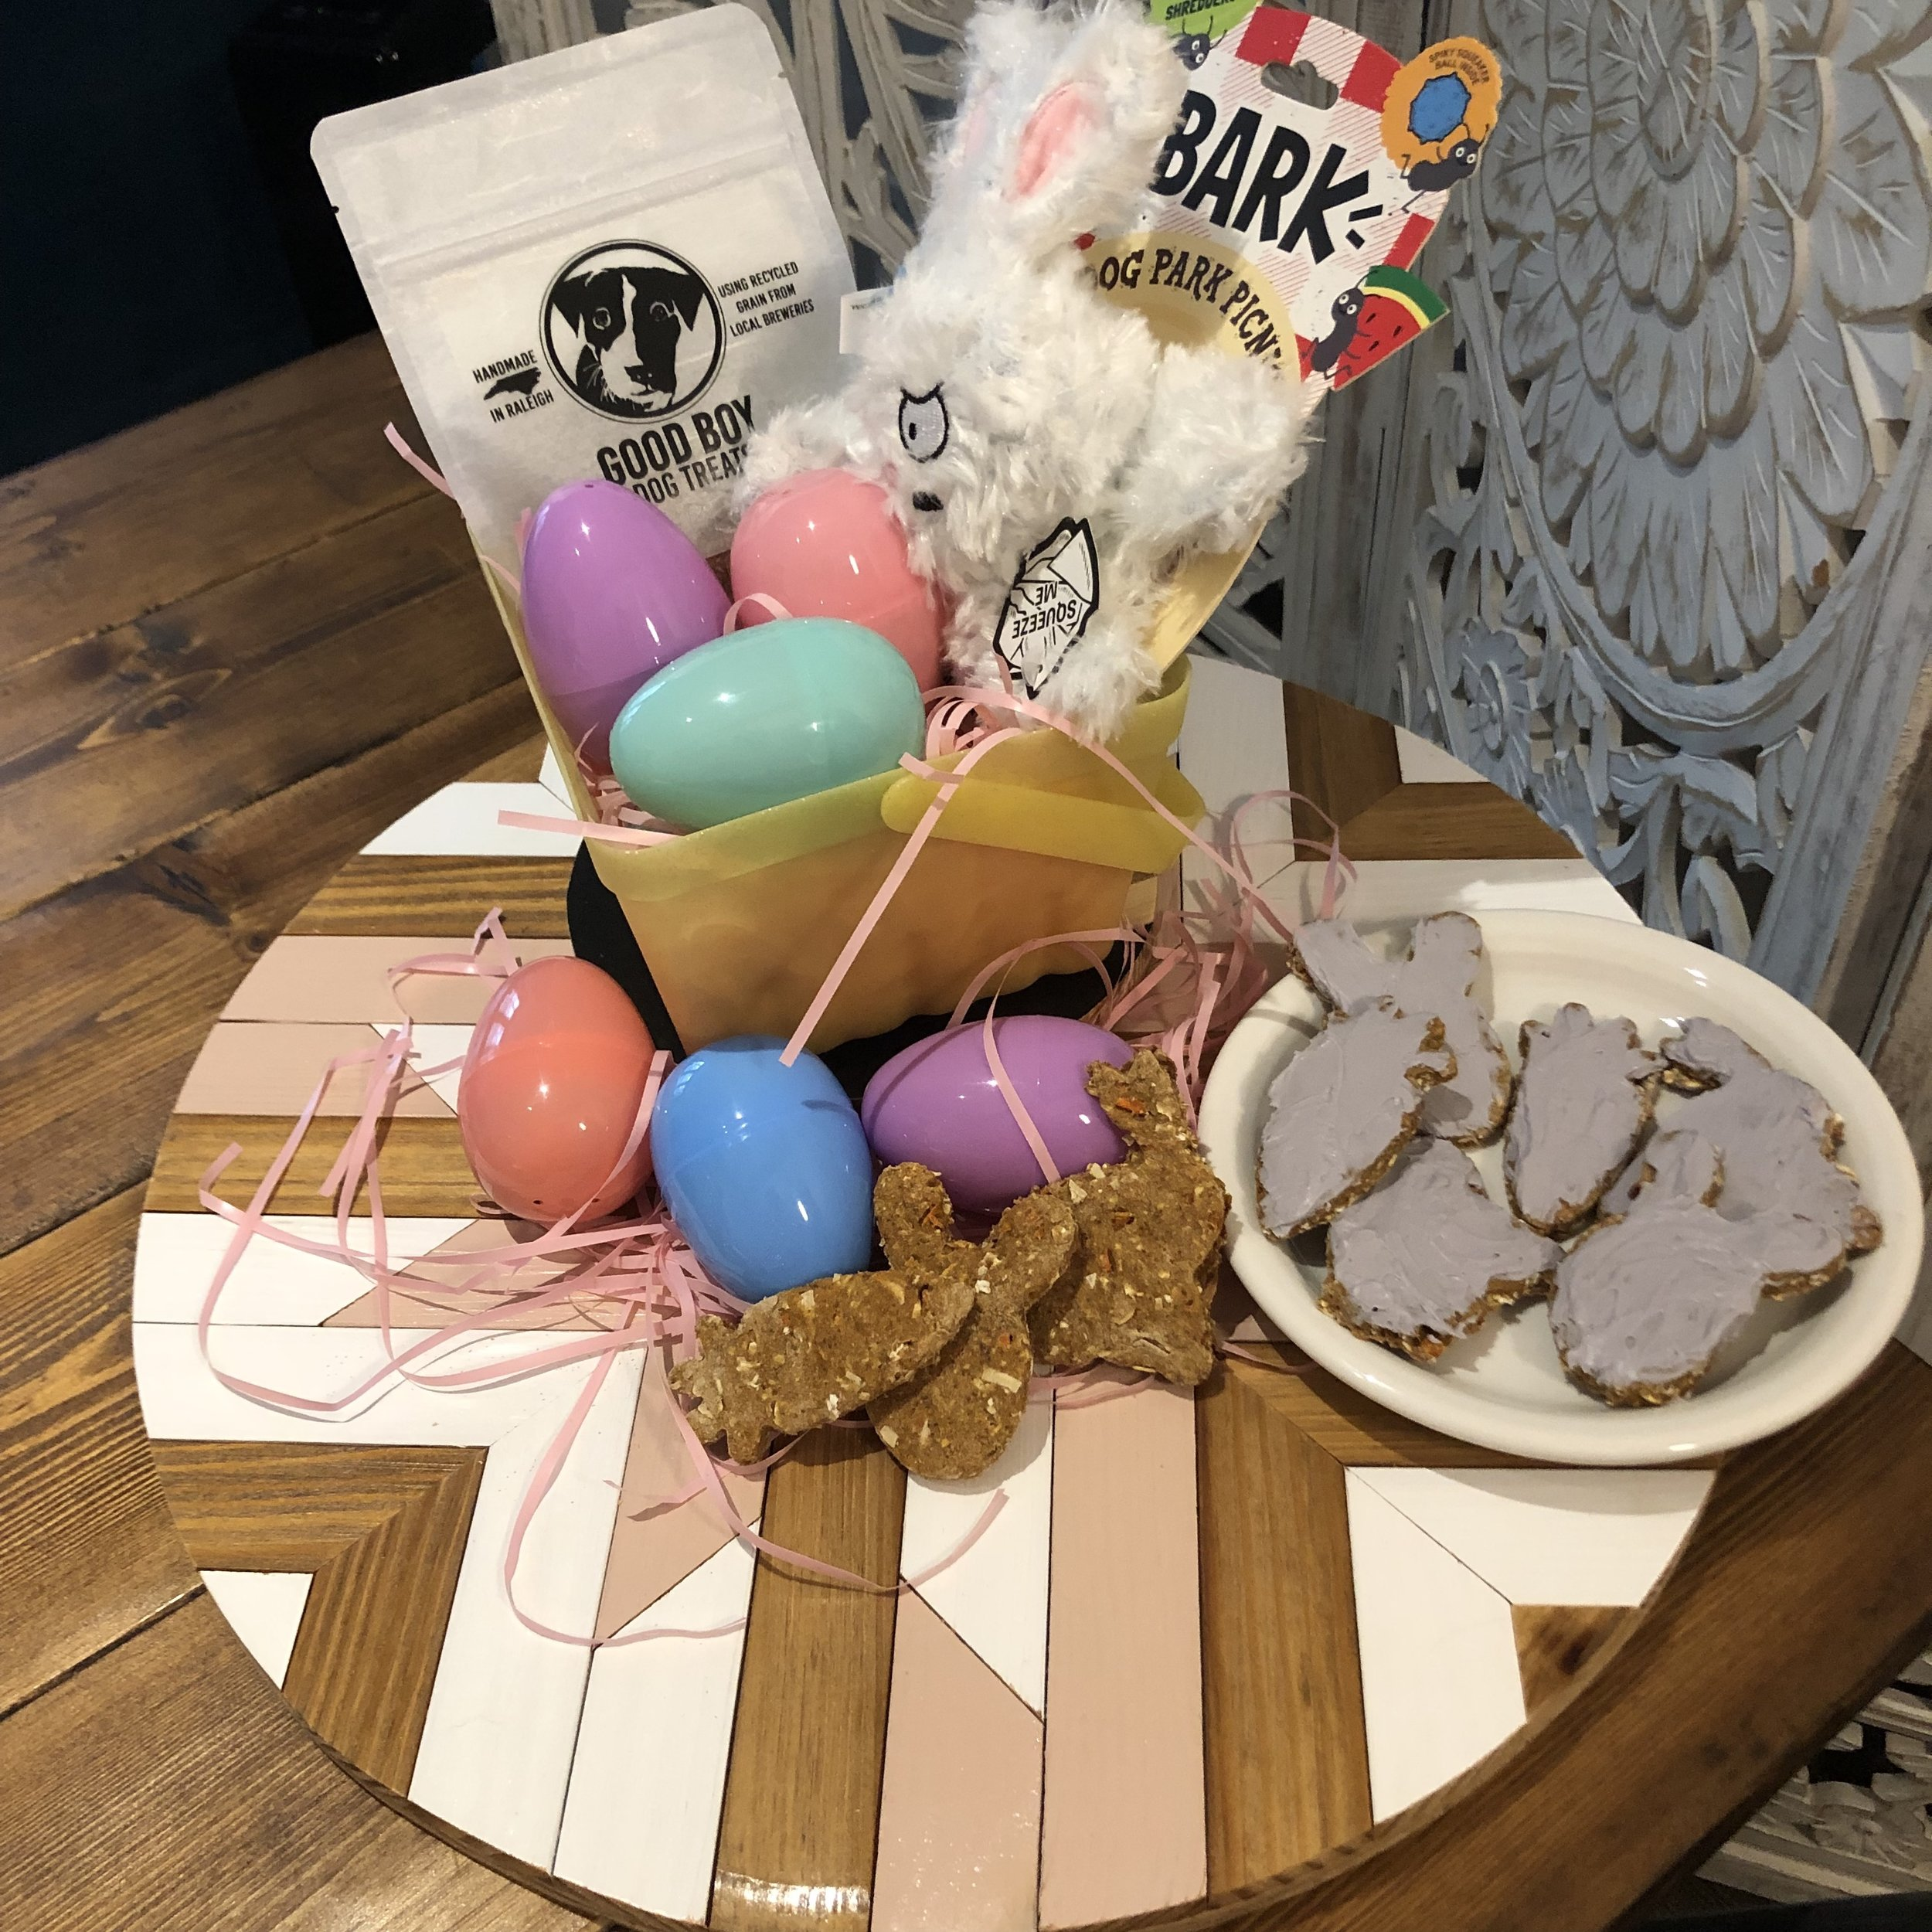 Easter Basket Perfection!! Iced Cookies Handmade by Mom, Treats Galore, with Bocces & Good Boy inside the Eggs, and Toy to top it off!